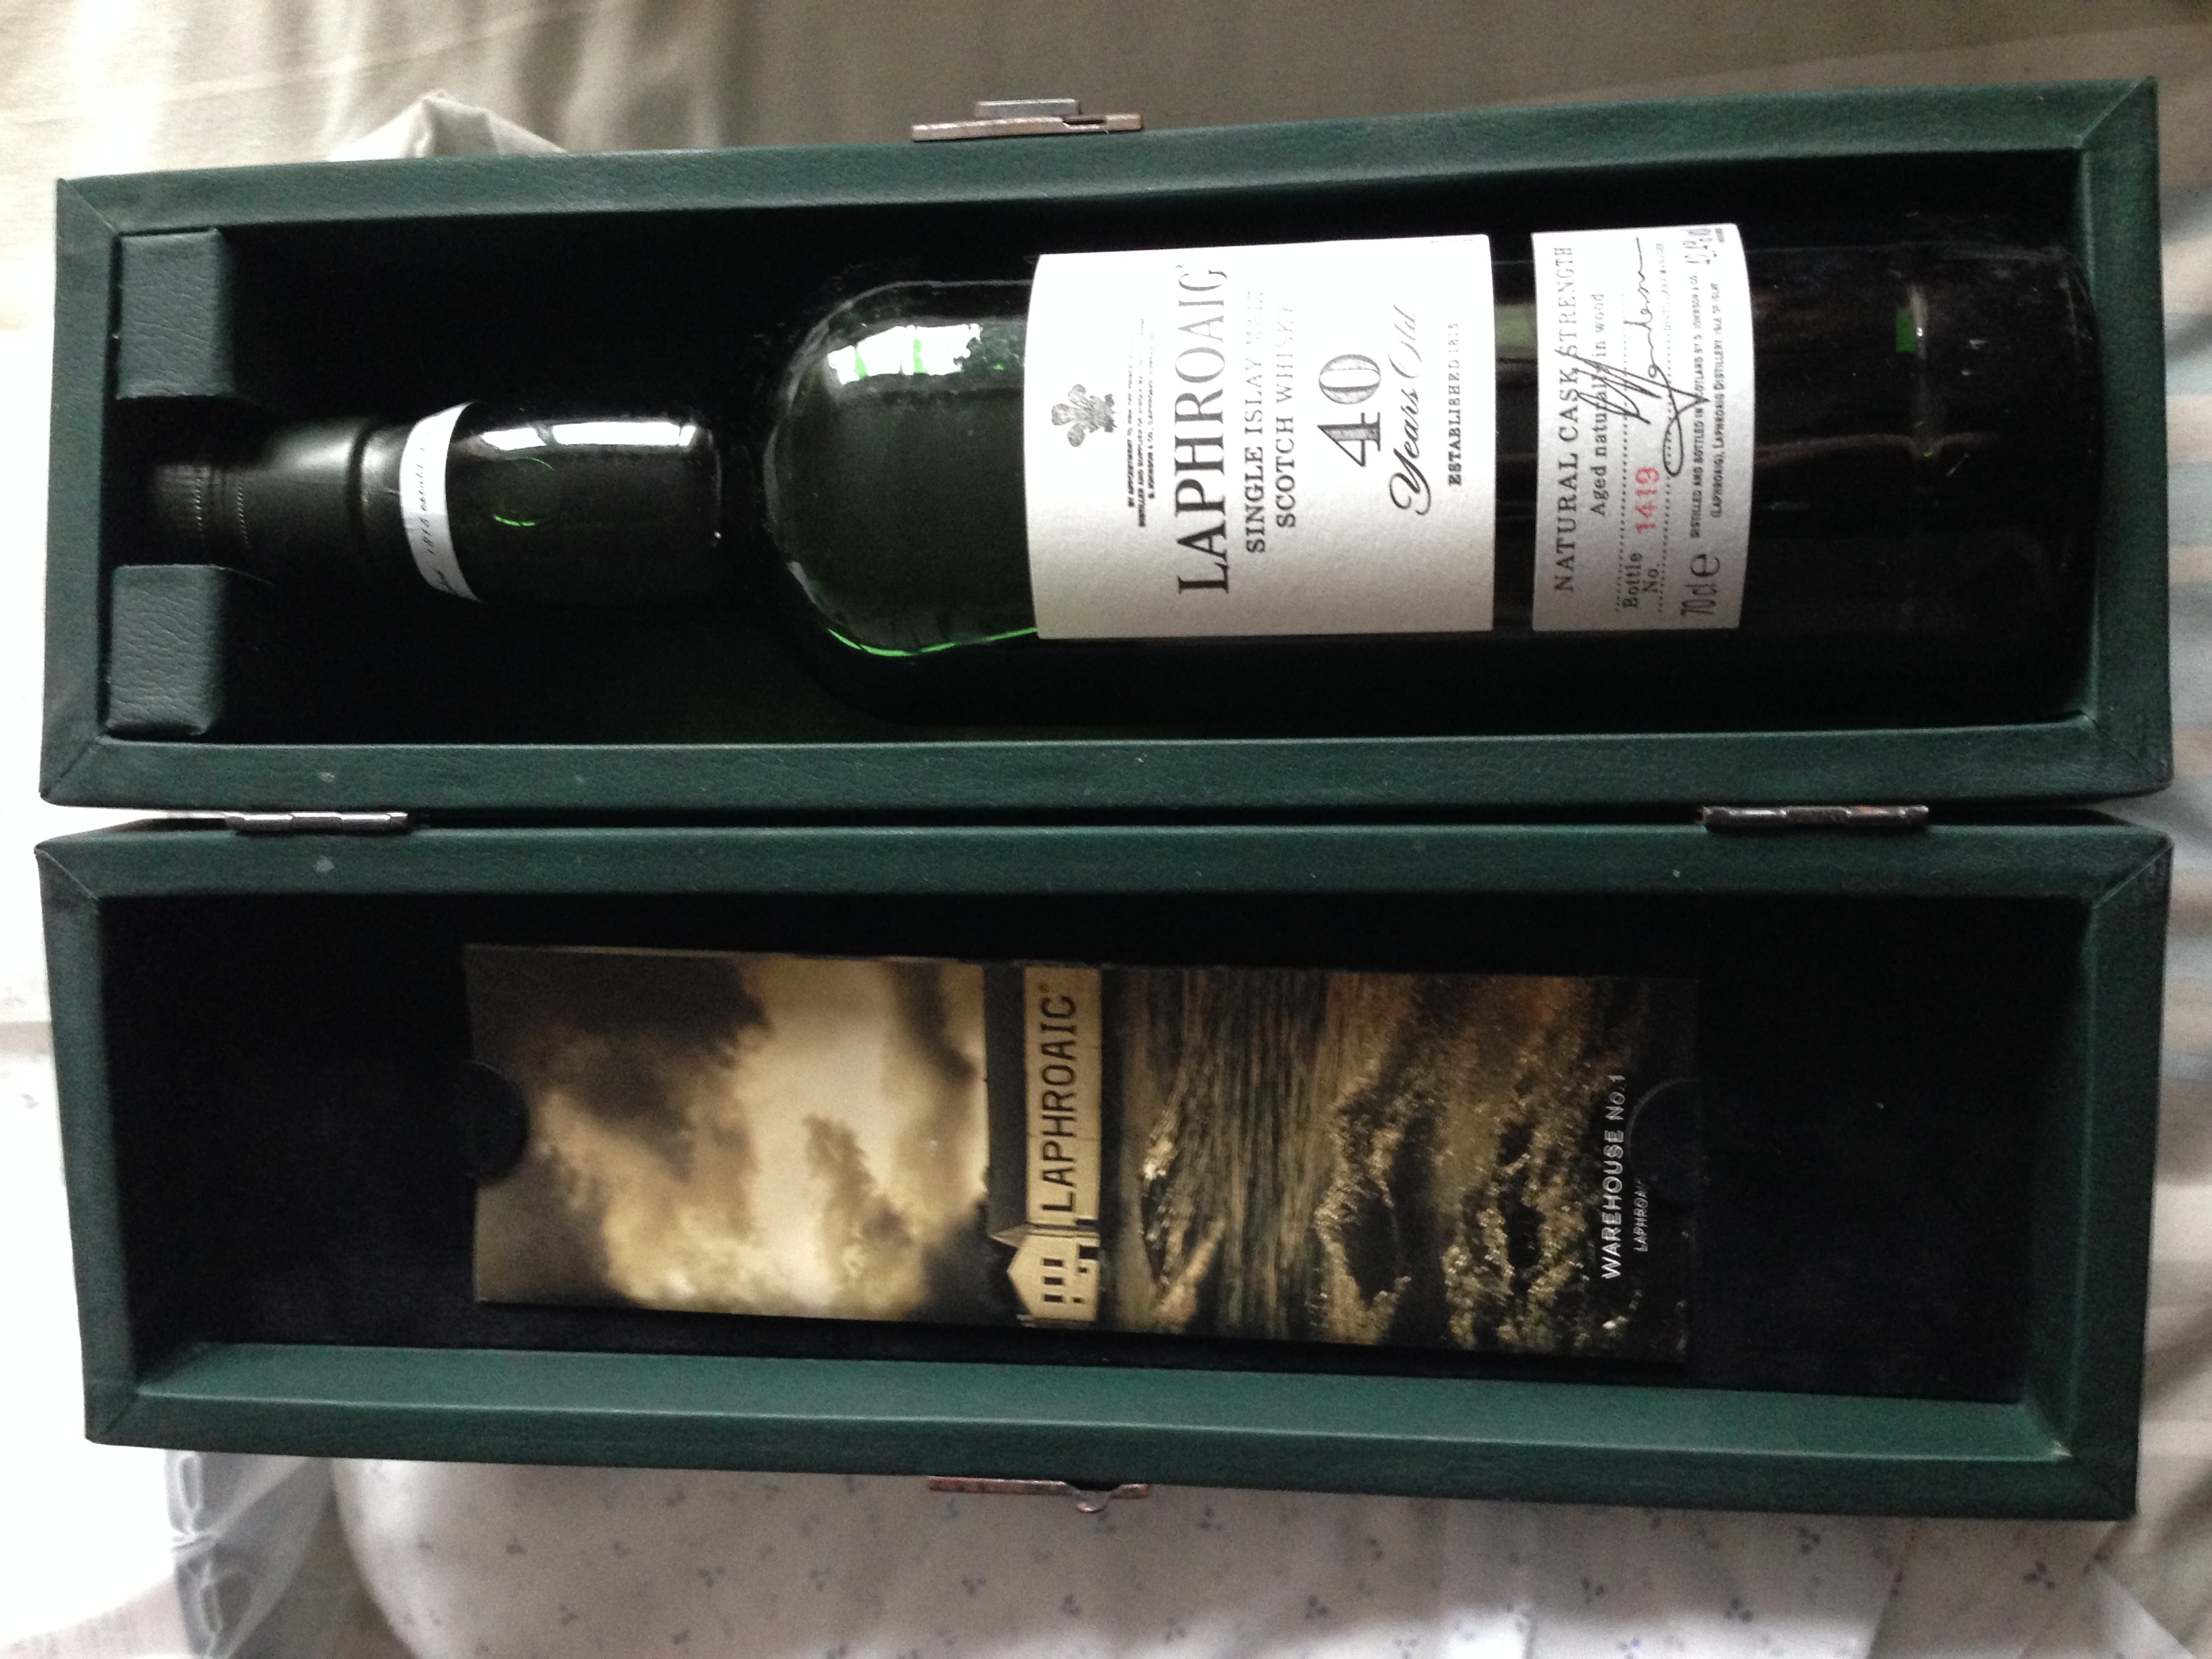 40 year old Laphroaig